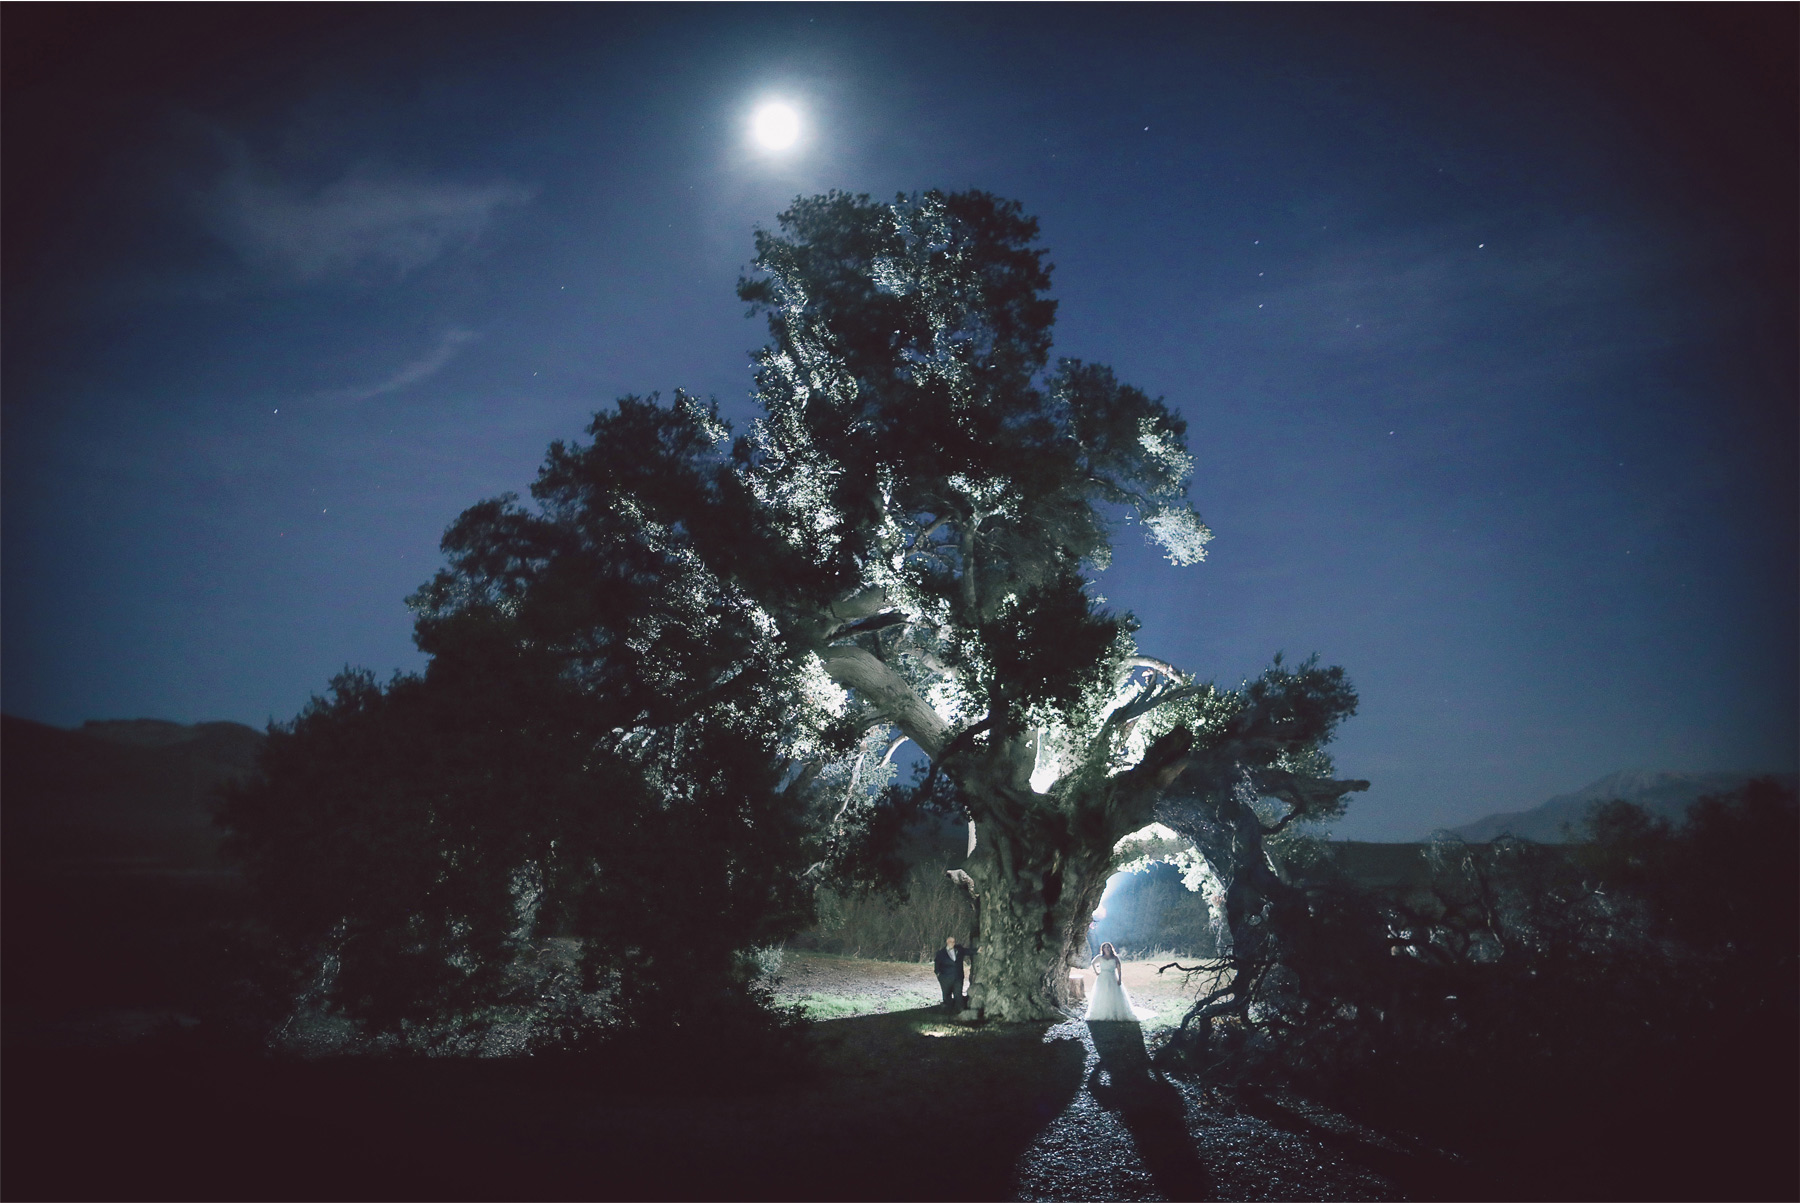 23-Los-Angeles-California-Wedding-Photographer-by-Vick-Photography-Highland-Springs-Ranch-LGBT-Night-Photography-Trees-Rebecca-and-Terri.jpg